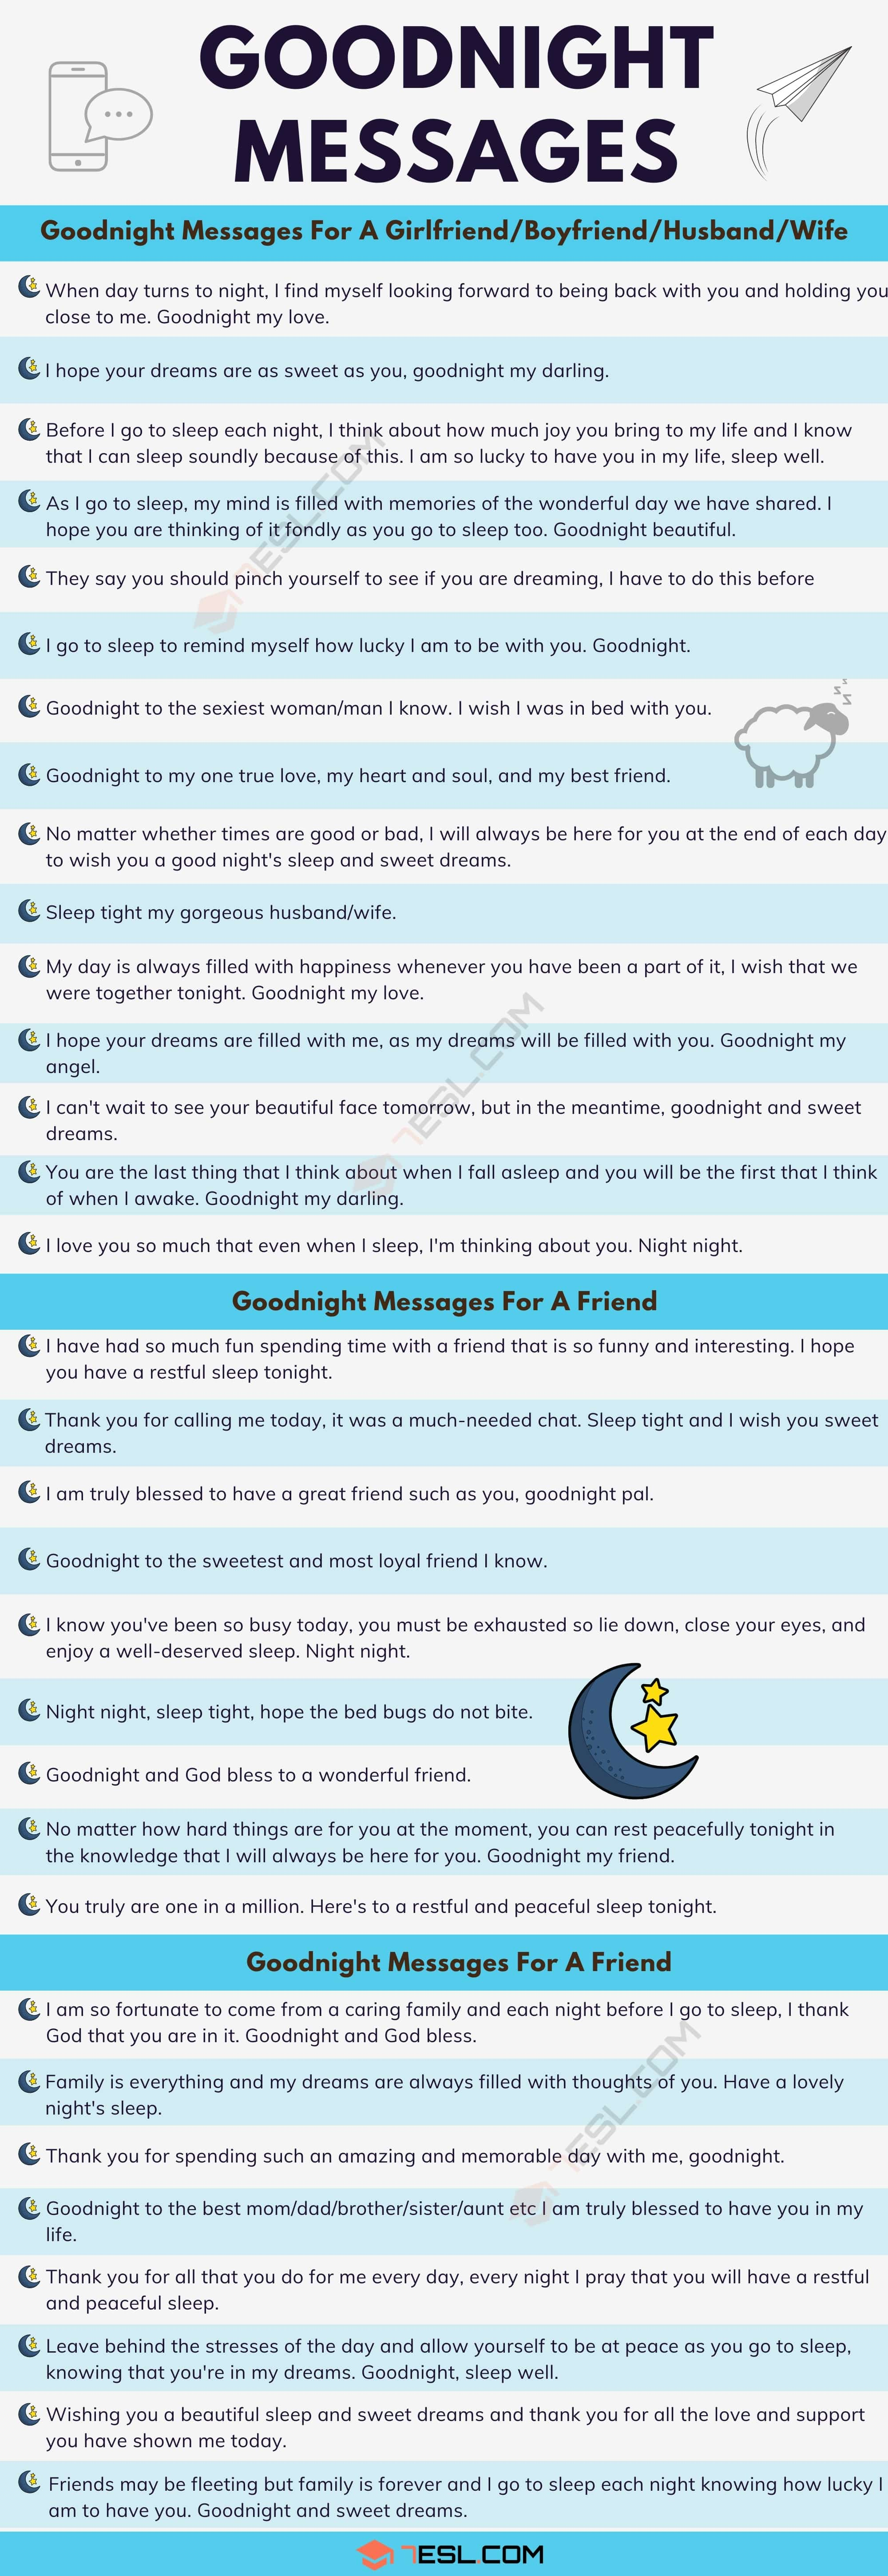 Goodnight Messages: 30+ Meaningful Goodnight Messages For Someone You Love